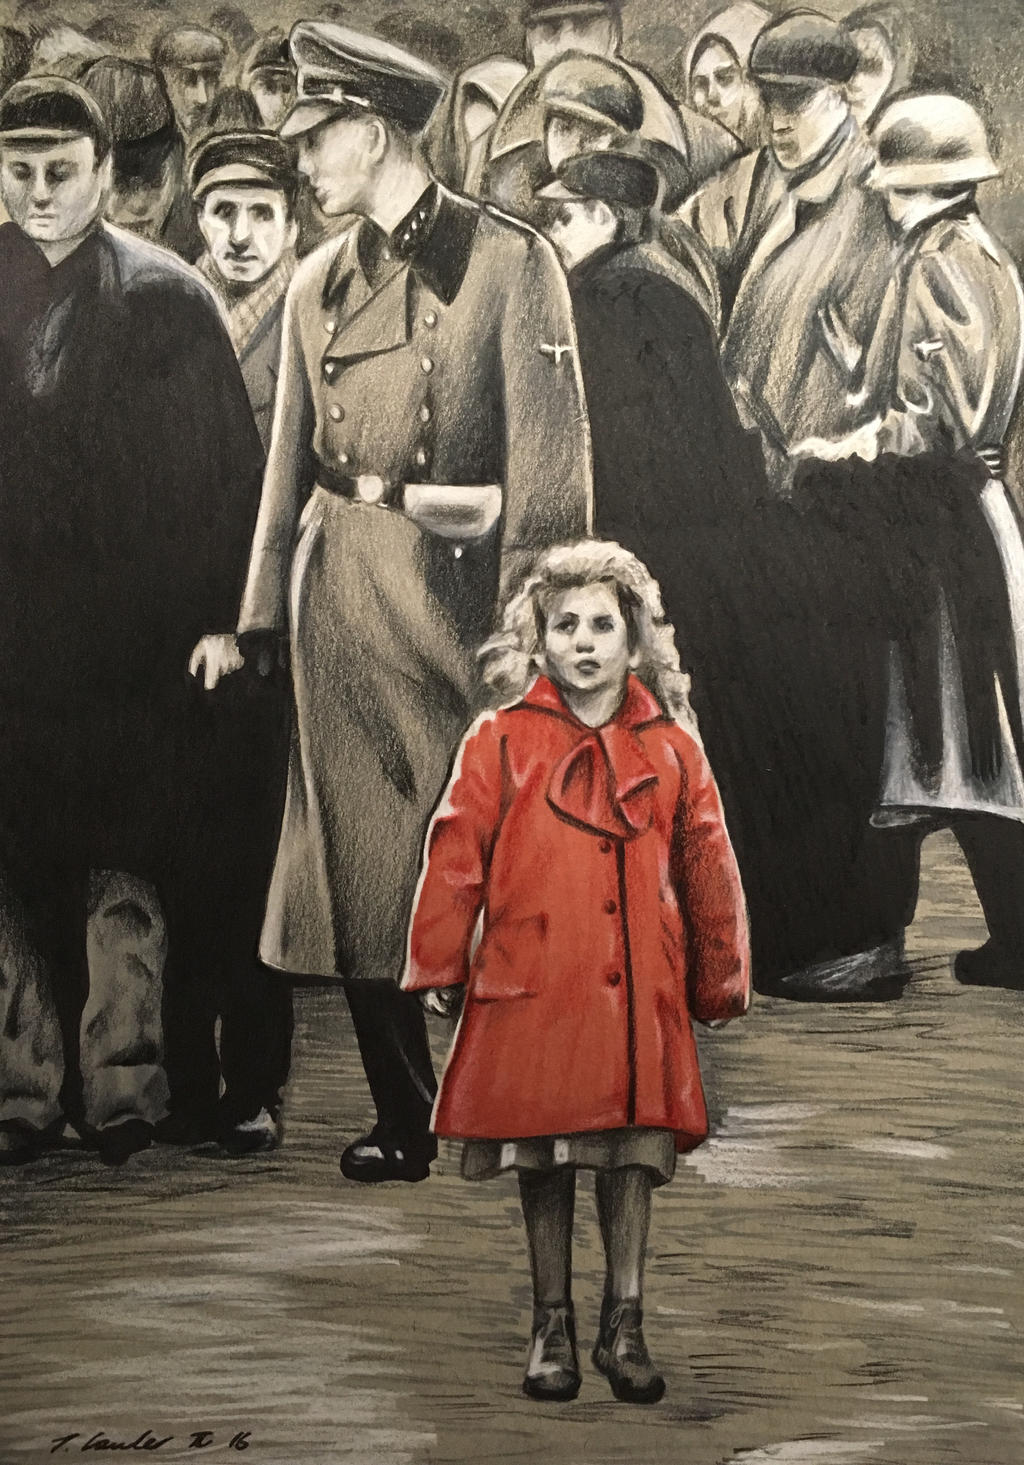 Schindlers List girl in the red coat drawing by billyboyuk on ...